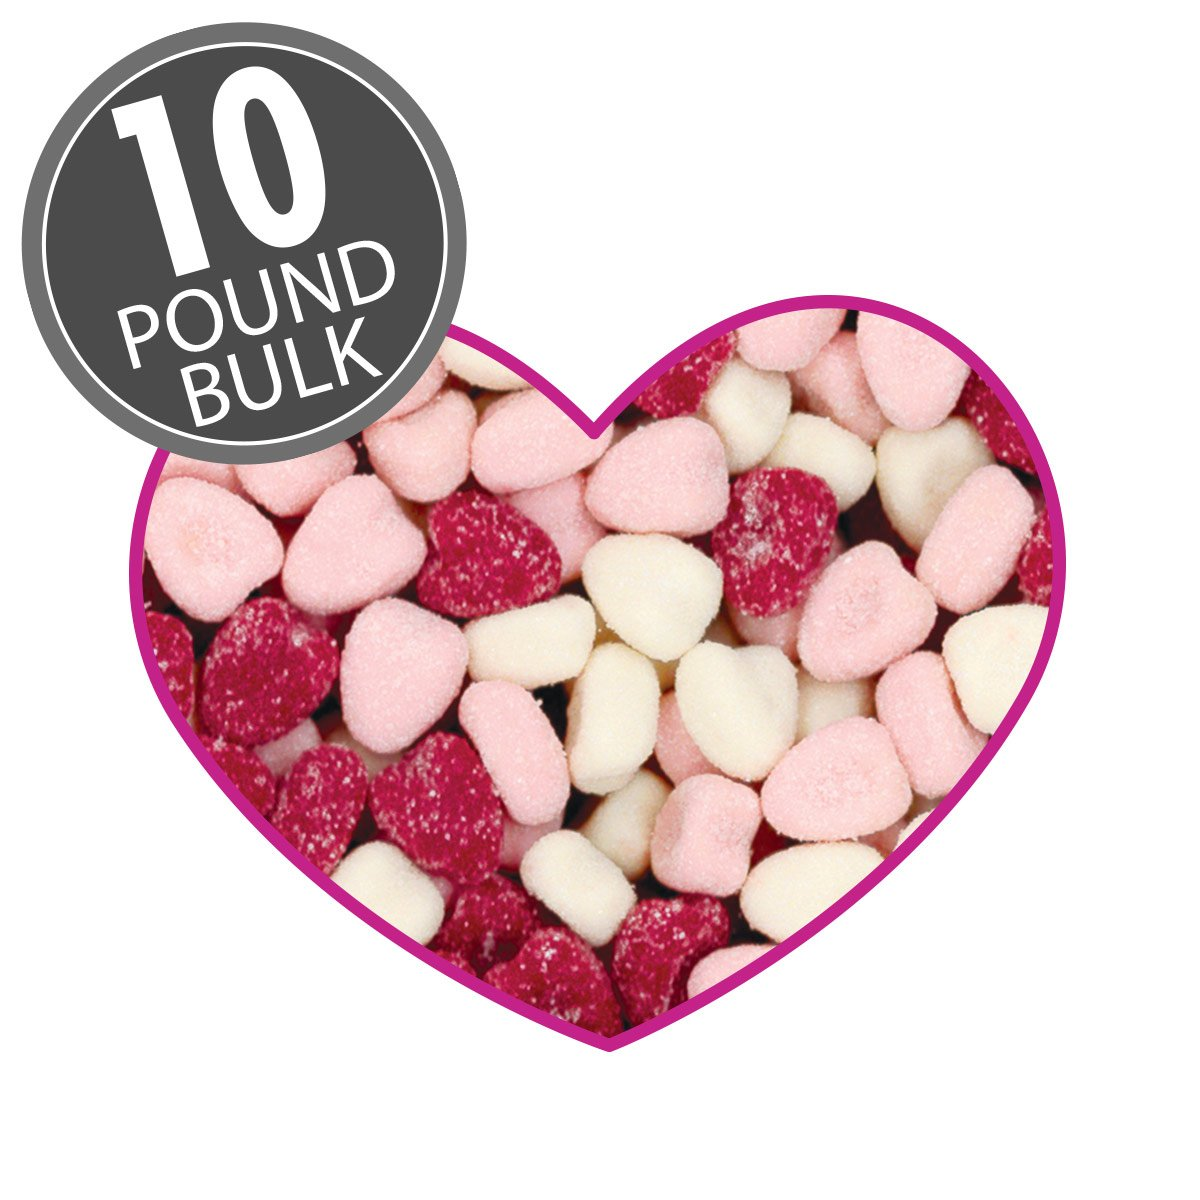 Petite Sour Hearts - 10 lbs bulk by Jelly Belly Confections